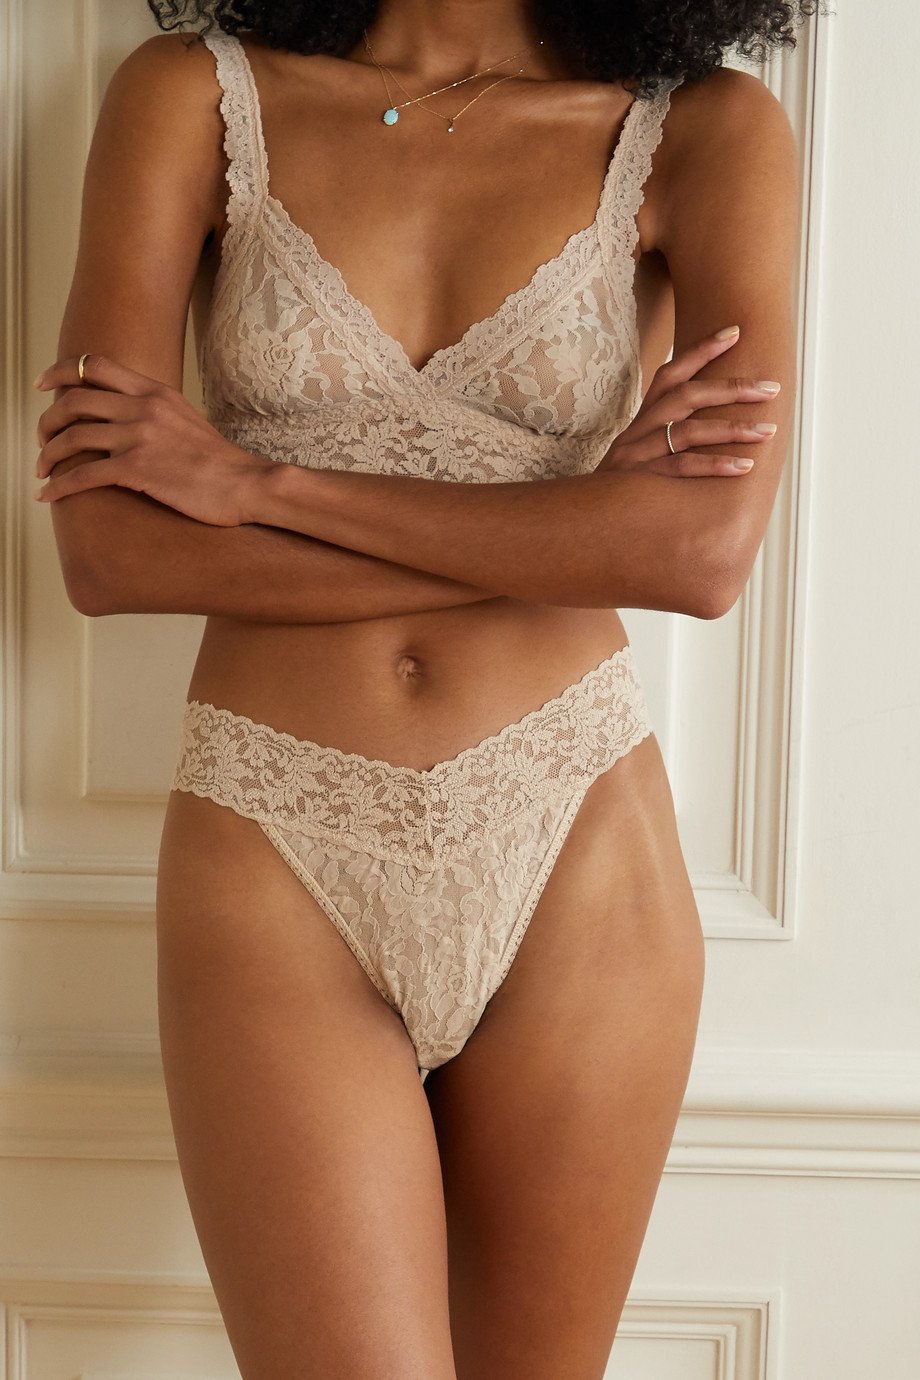 HANKY PANKY + Stoney Clover Lane + NET SUSTAIN Signature set of 12 stretch-lace thongs